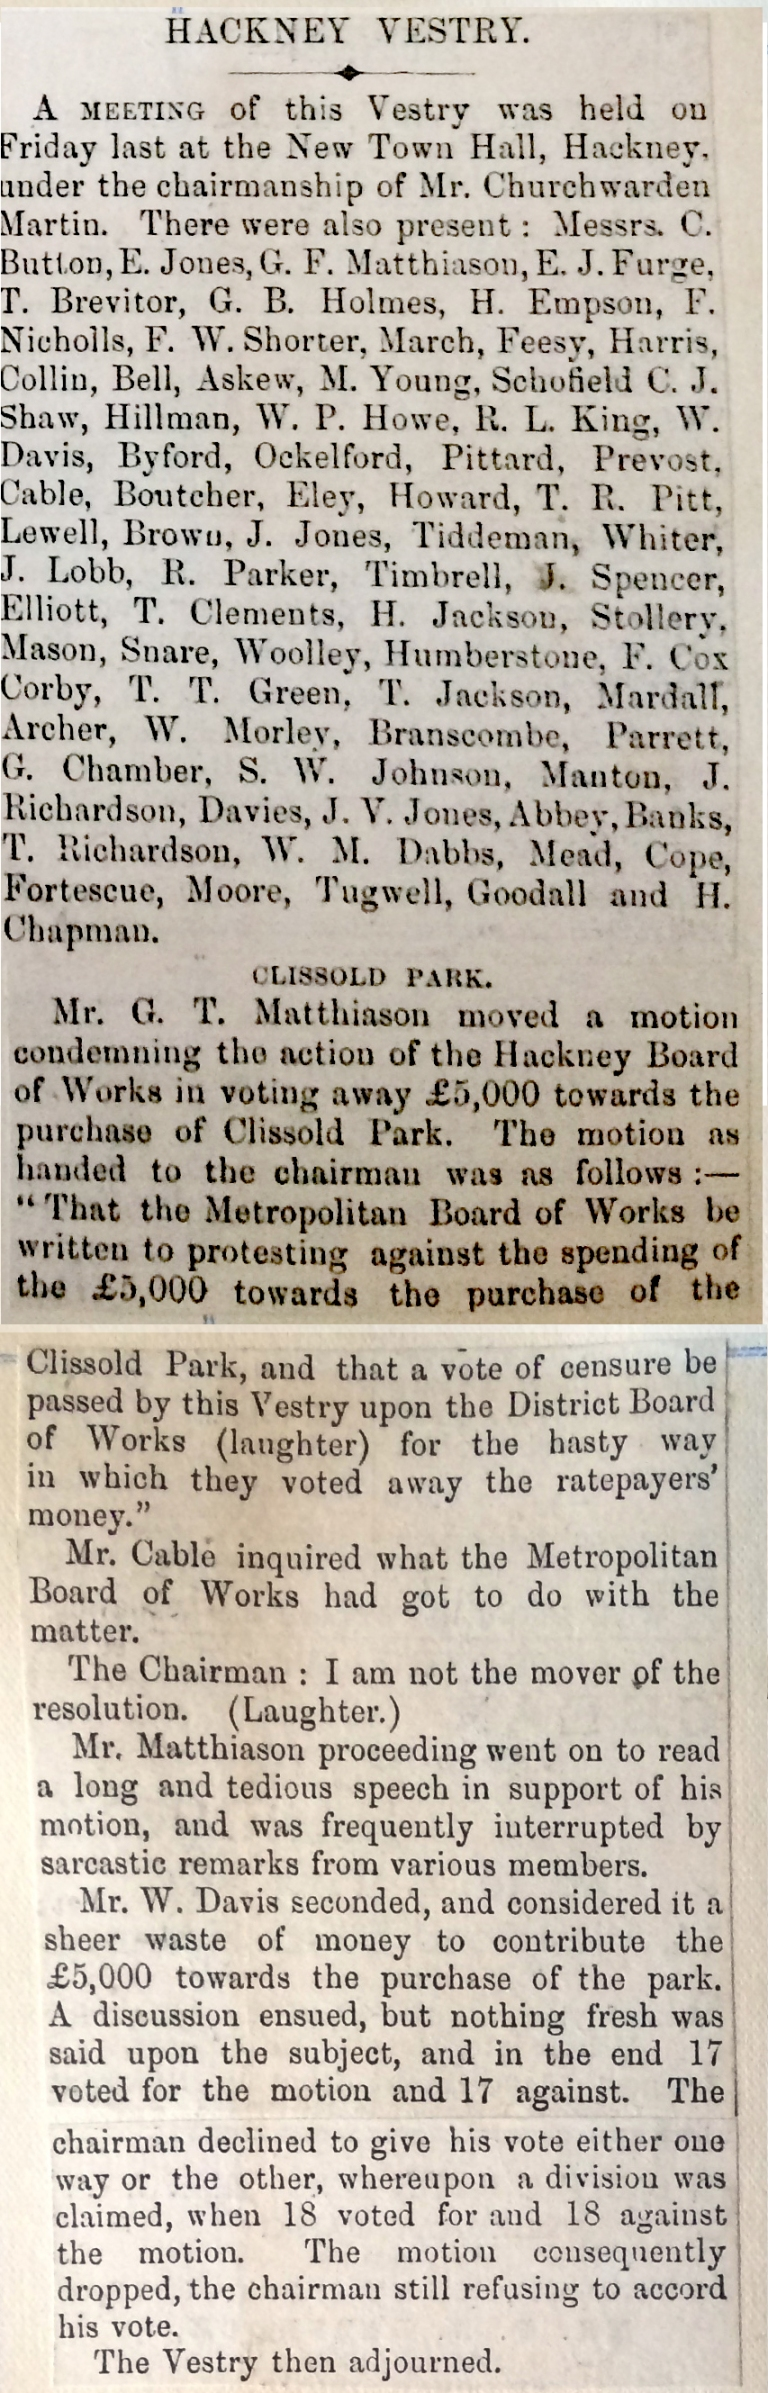 07_1888 NEWS CLIPPING Hackney Vestry[CHECKED] 2.JPG